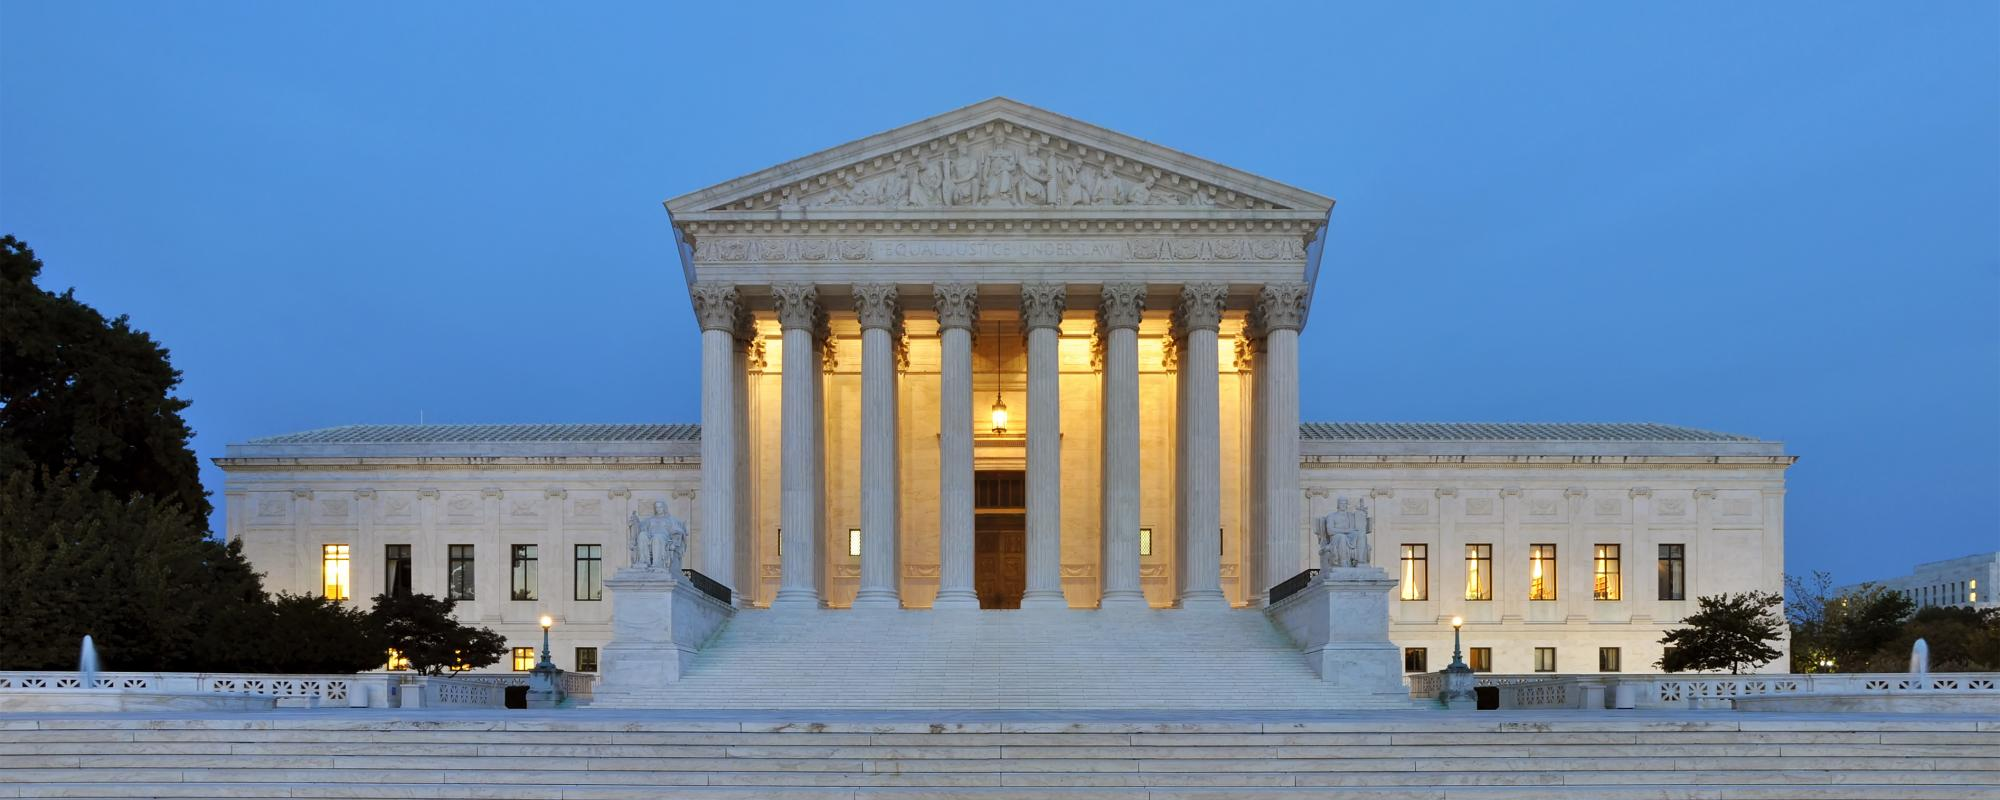 An image of the US Supreme Court Building